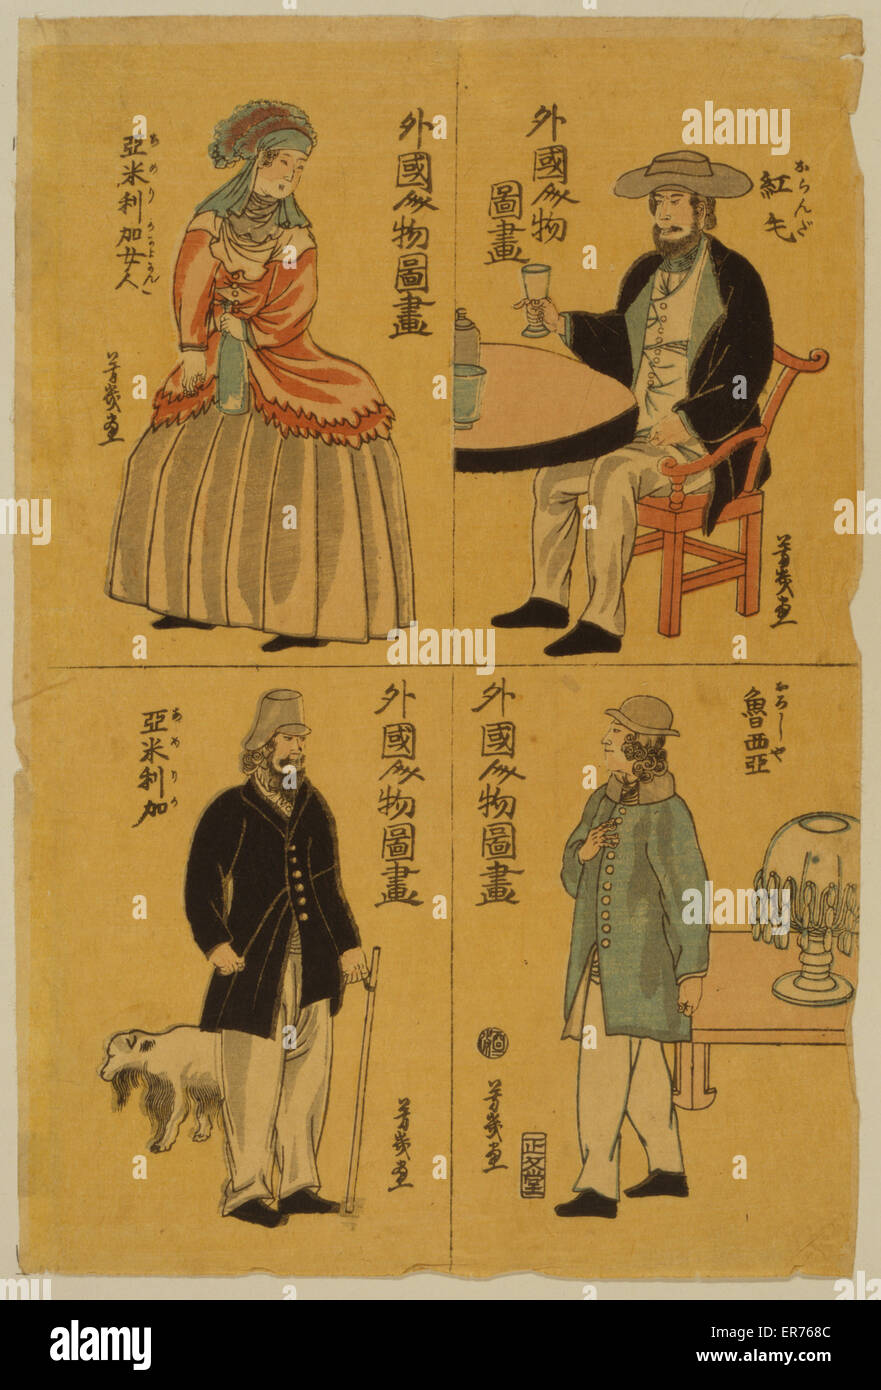 Portraits of foreigners - Dutch, Russian, American lady, American. Japanese print shows typical examples of Dutch, - Stock Image